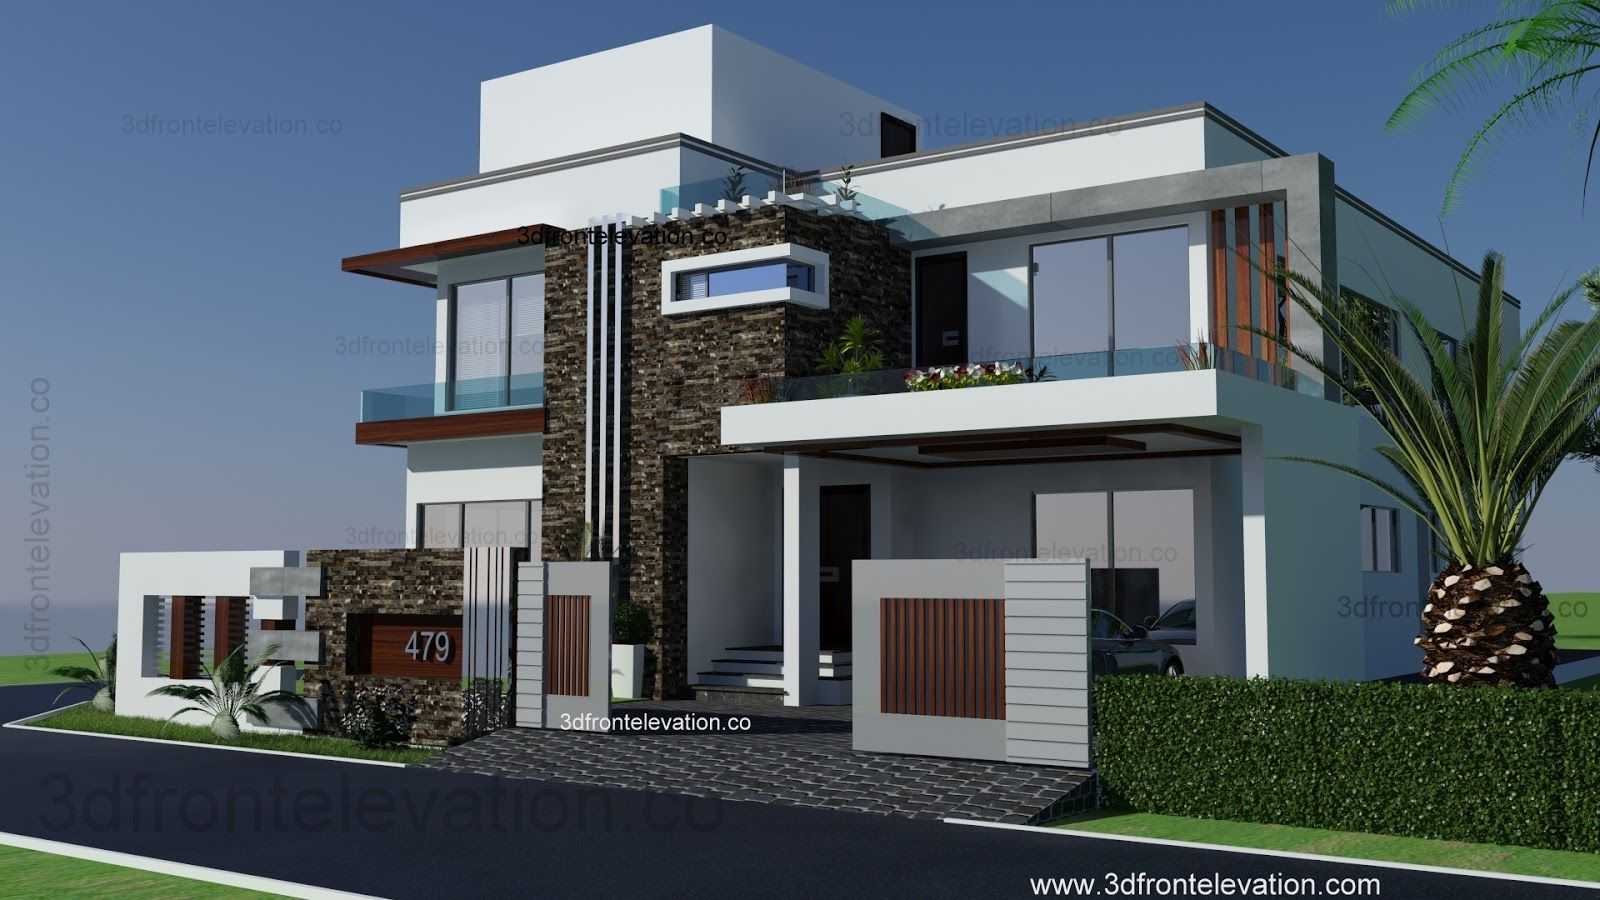 Modern house front elevation designs for Home designs 12m frontage